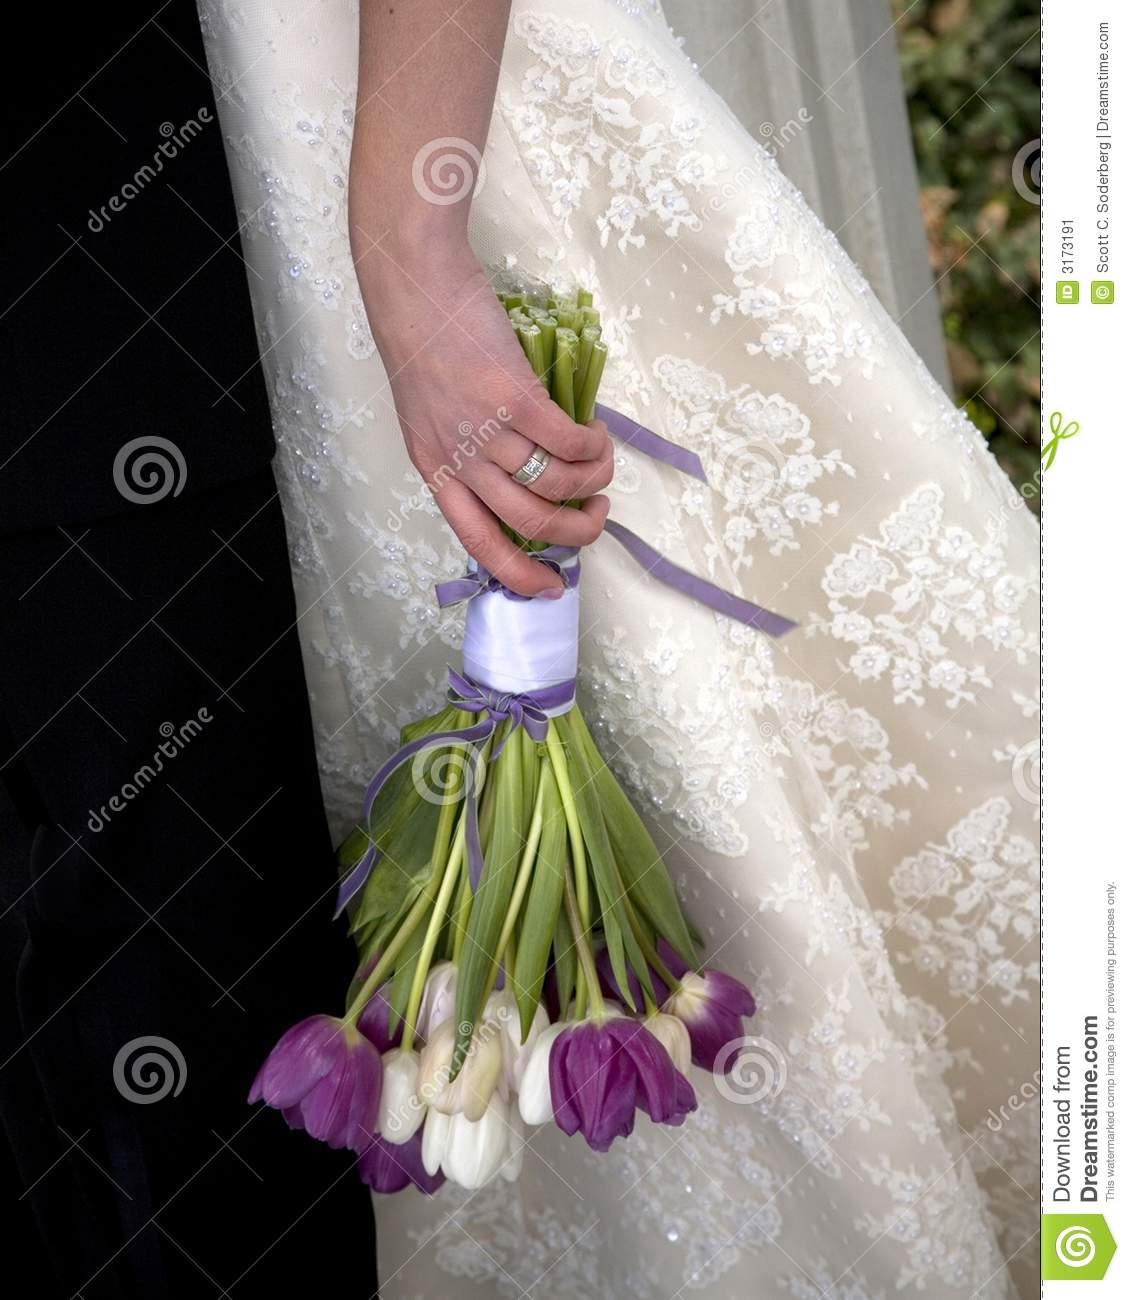 Tulip Wedding Bouquet Stock Image Image Of Commitment